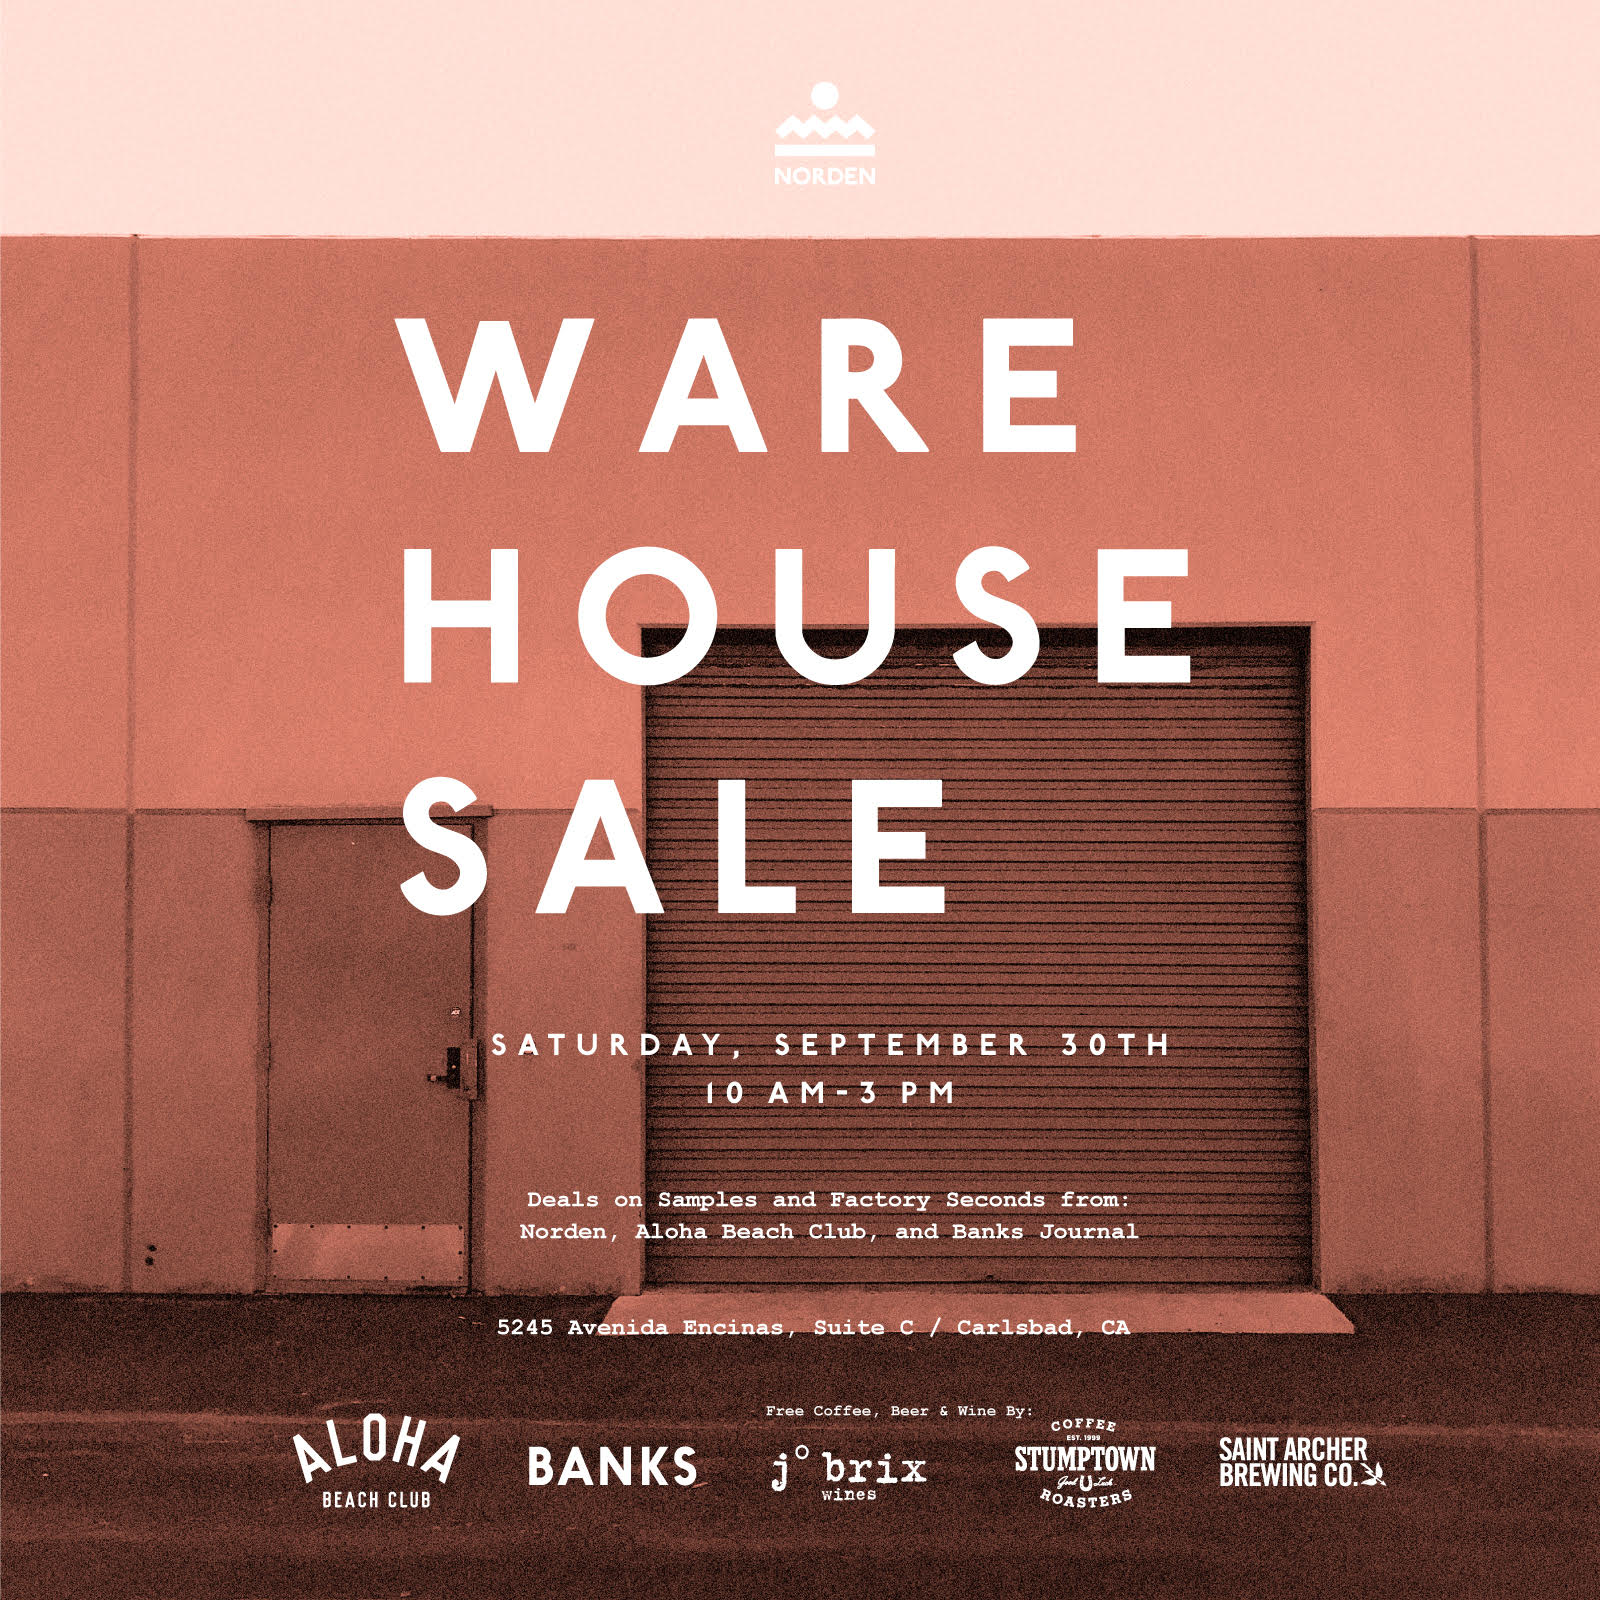 Aloha Beach Club, Norden, Banks Warehouse Sale